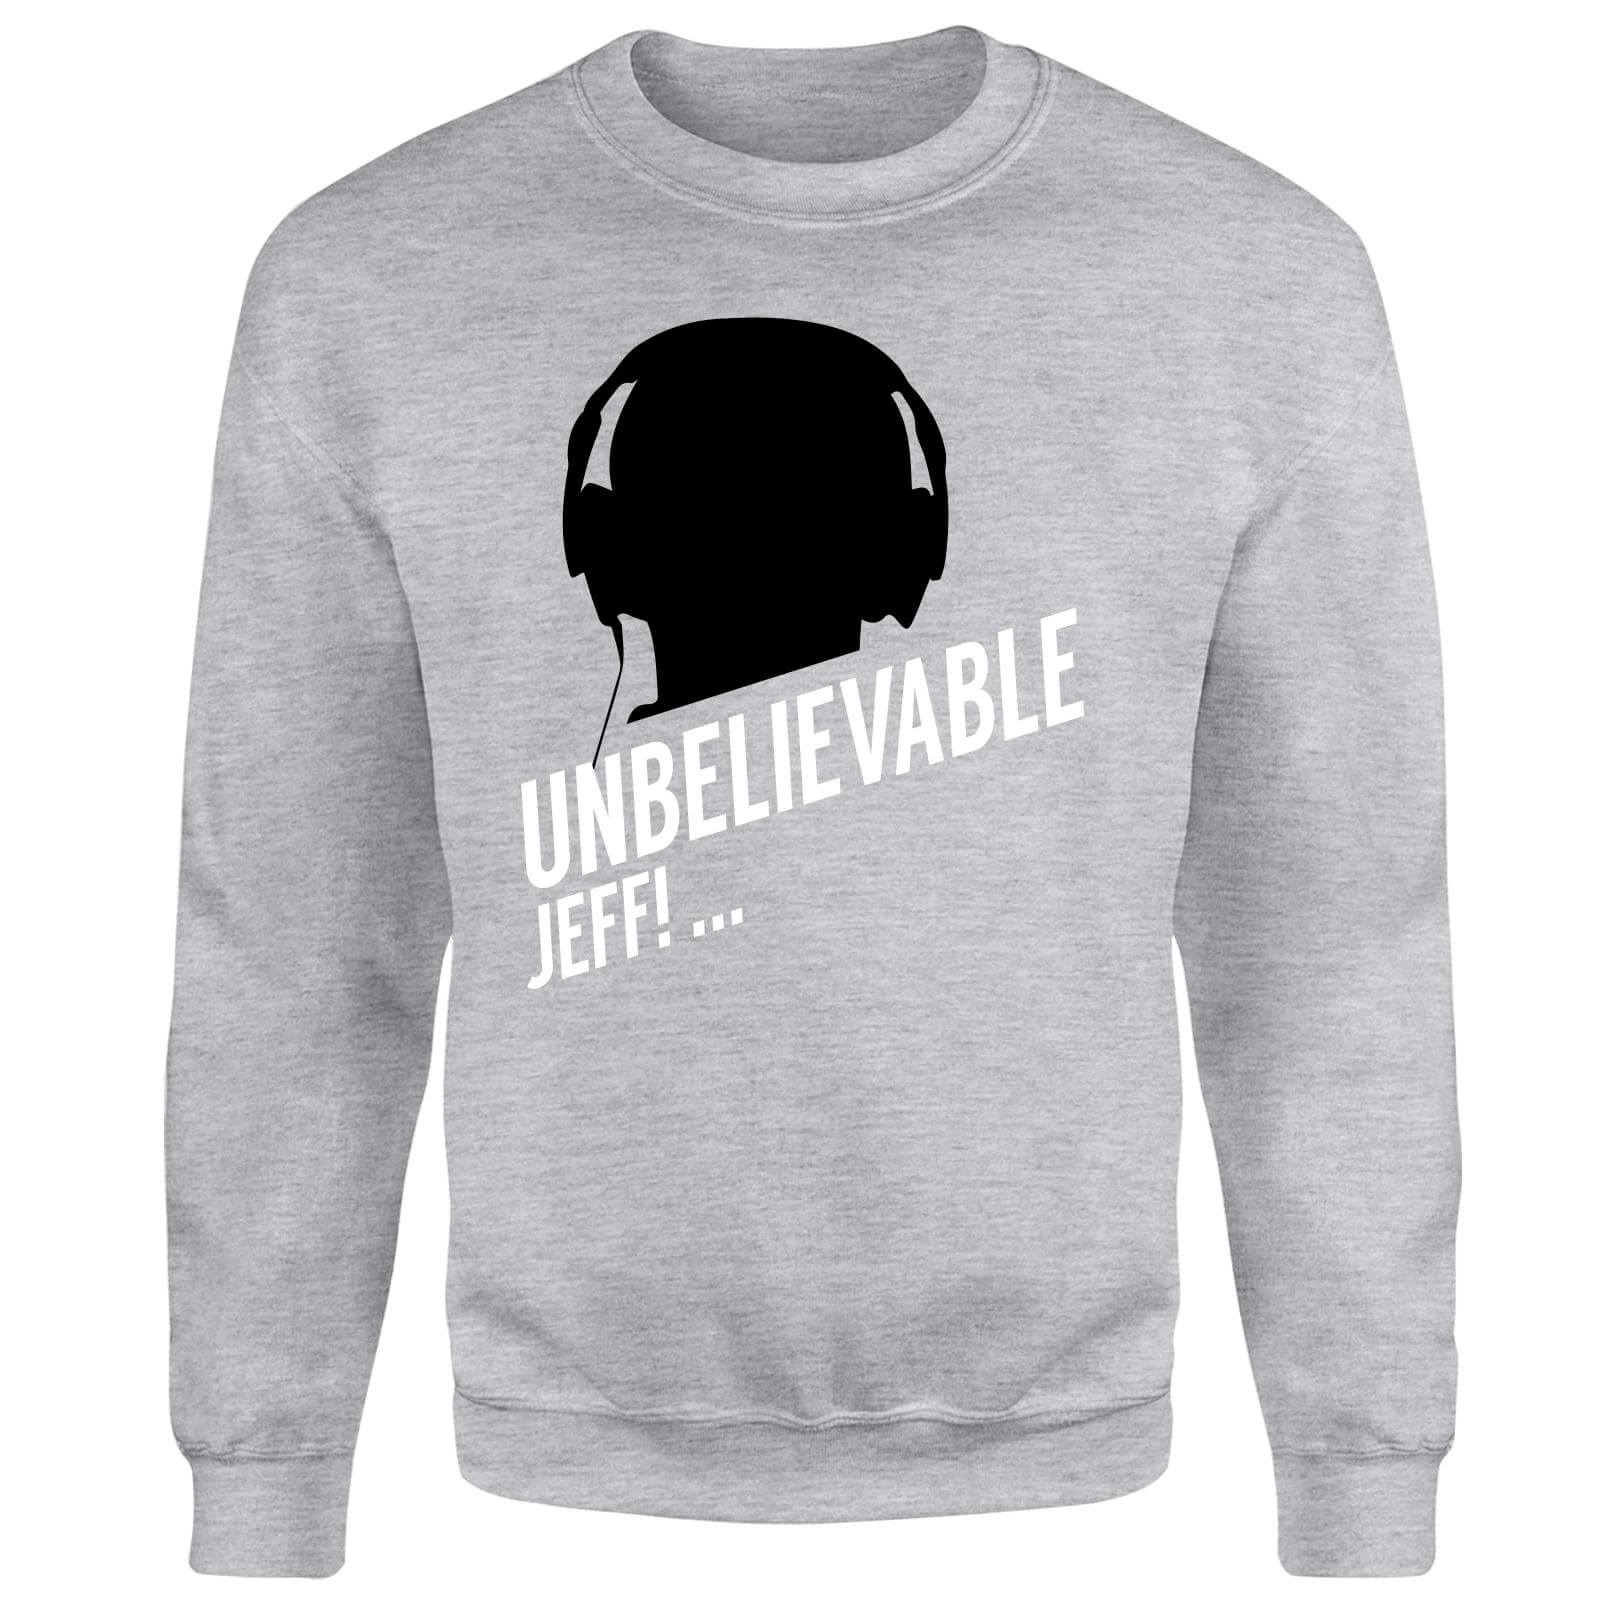 UNBELIEVABLE JEFF! Sweatshirt - Grey